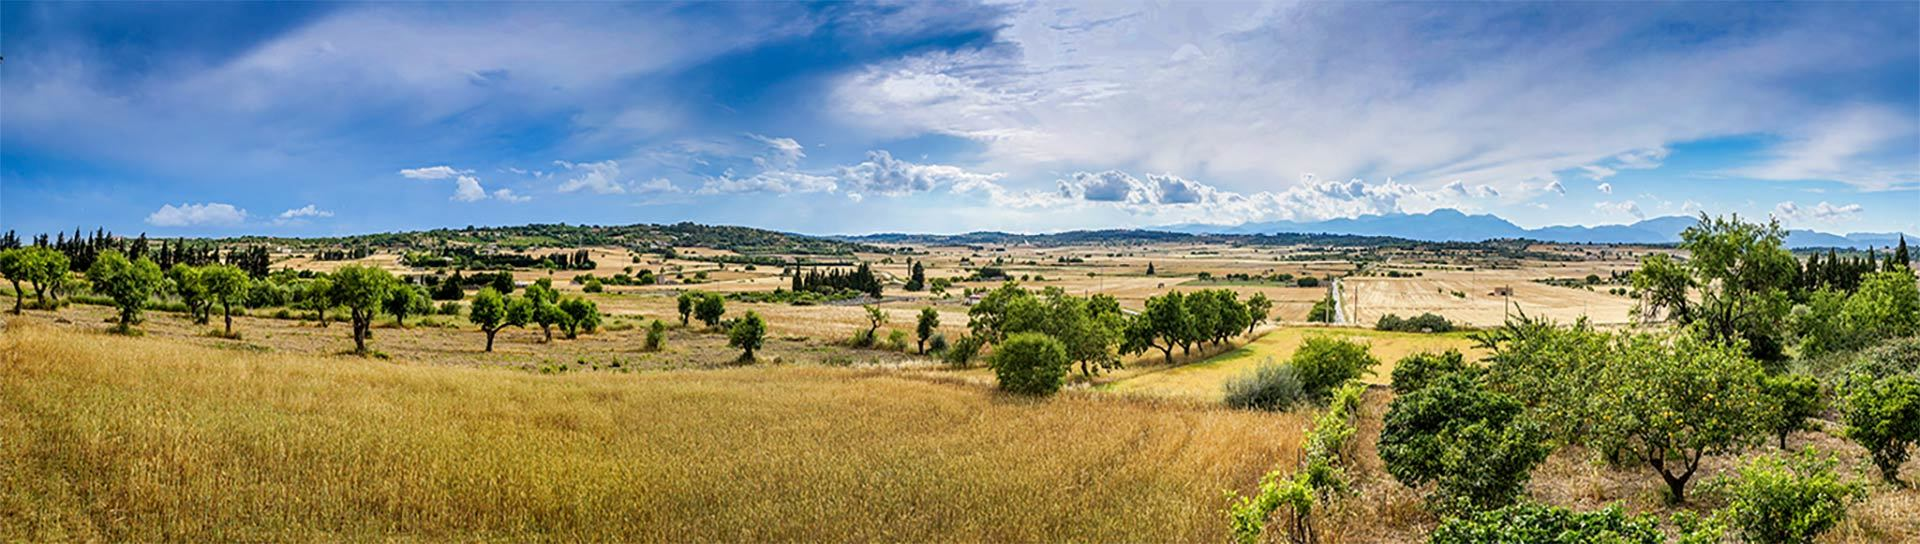 Manacor Farmland Panoramic View